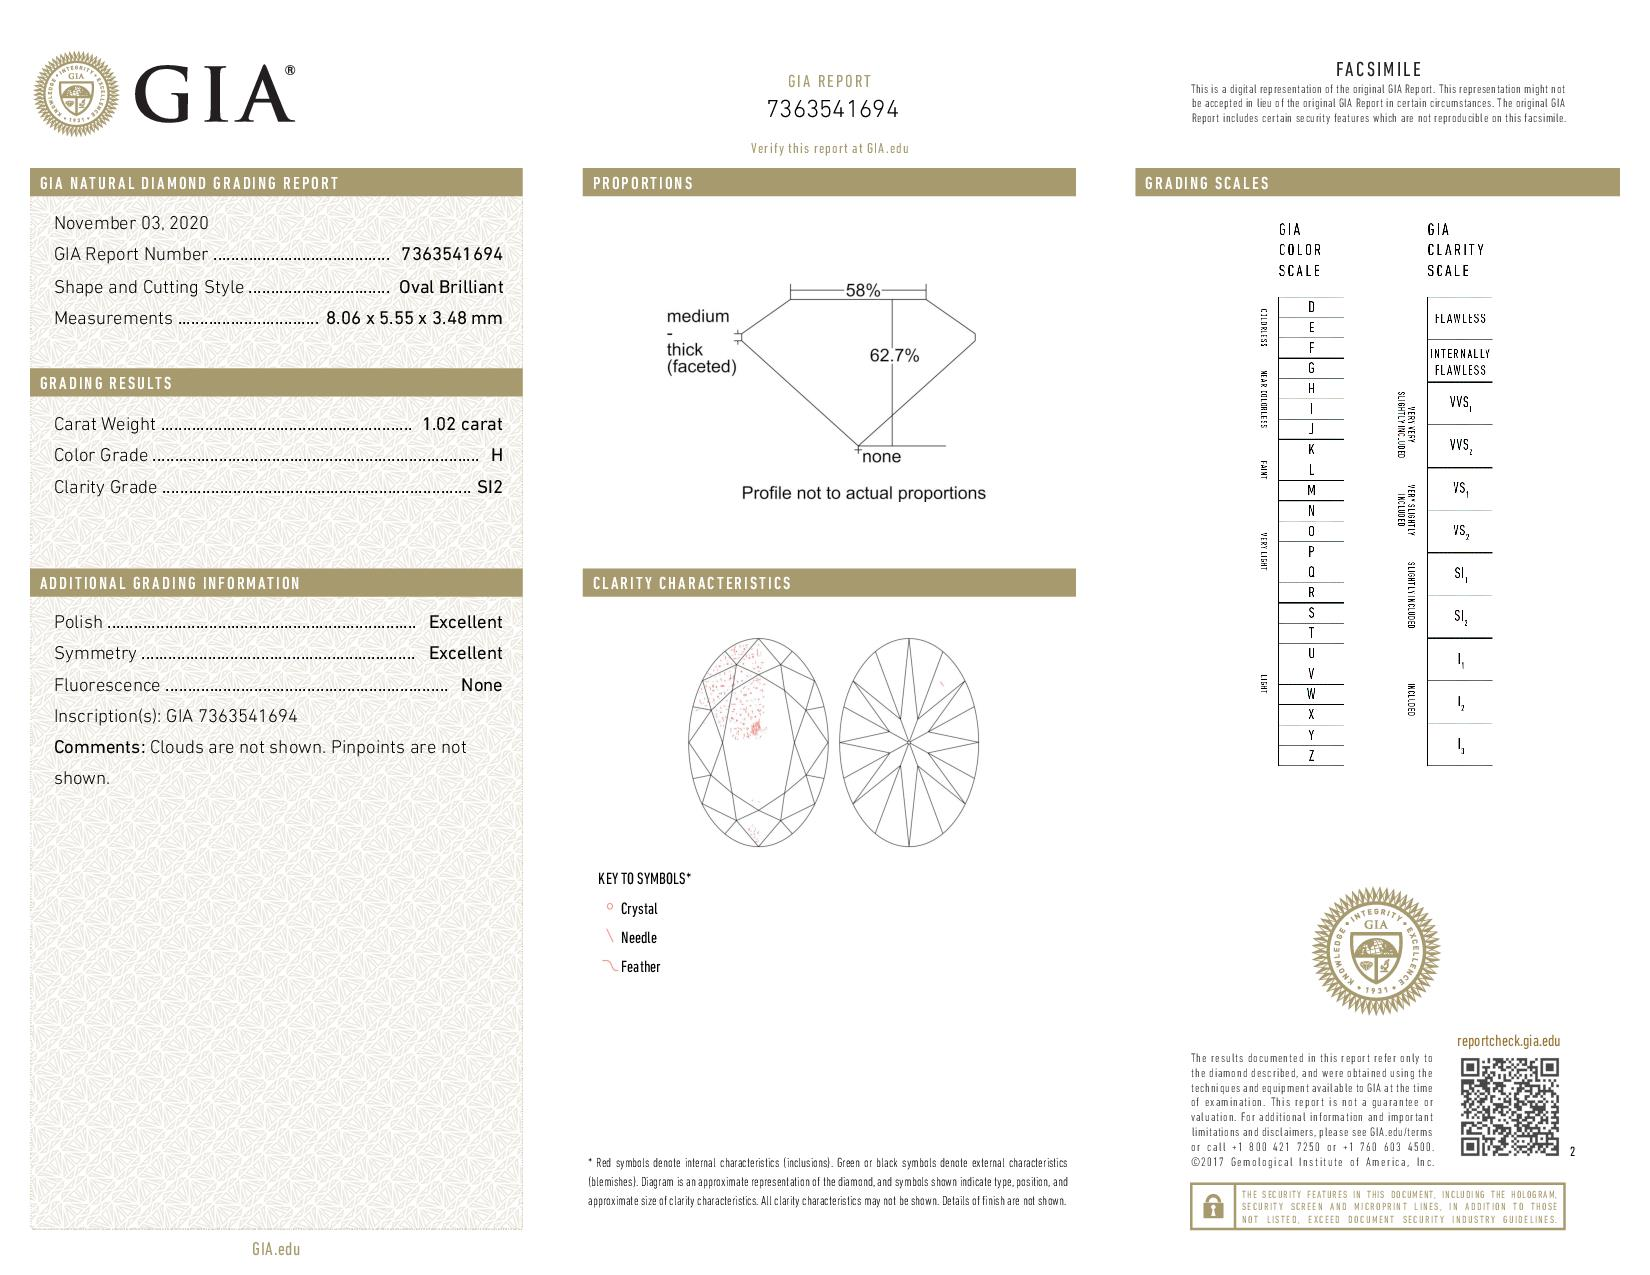 This is a 1.02 carat oval shape, H color, SI2 clarity natural diamond accompanied by a GIA grading report.